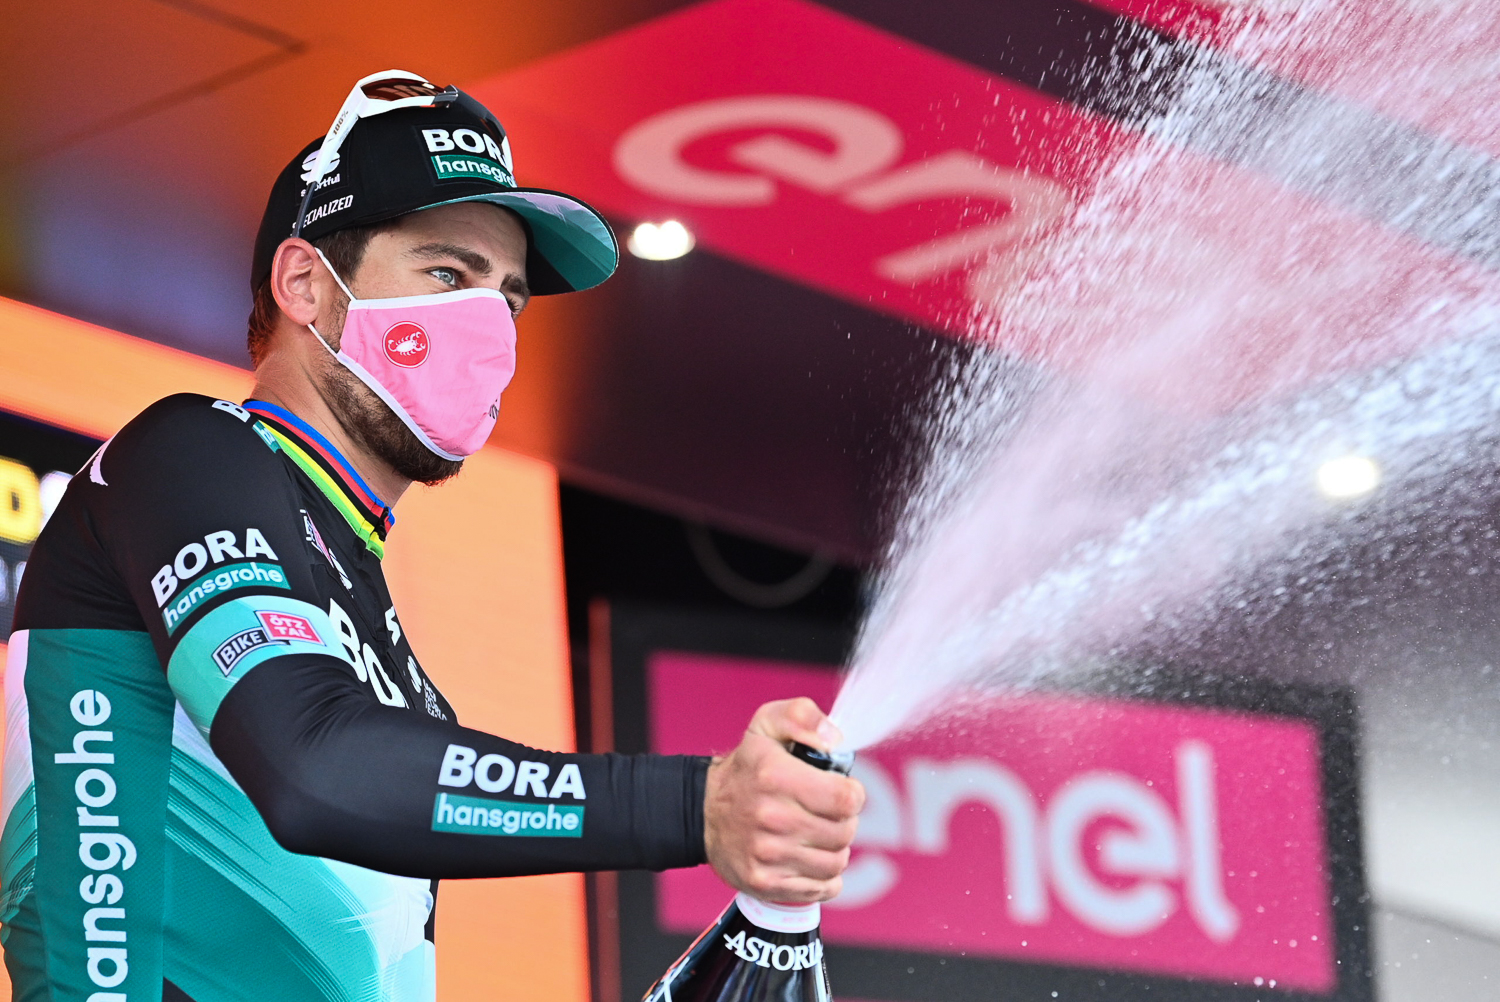 Why has the Giro d'Italia made the best cycling advertising campaign?